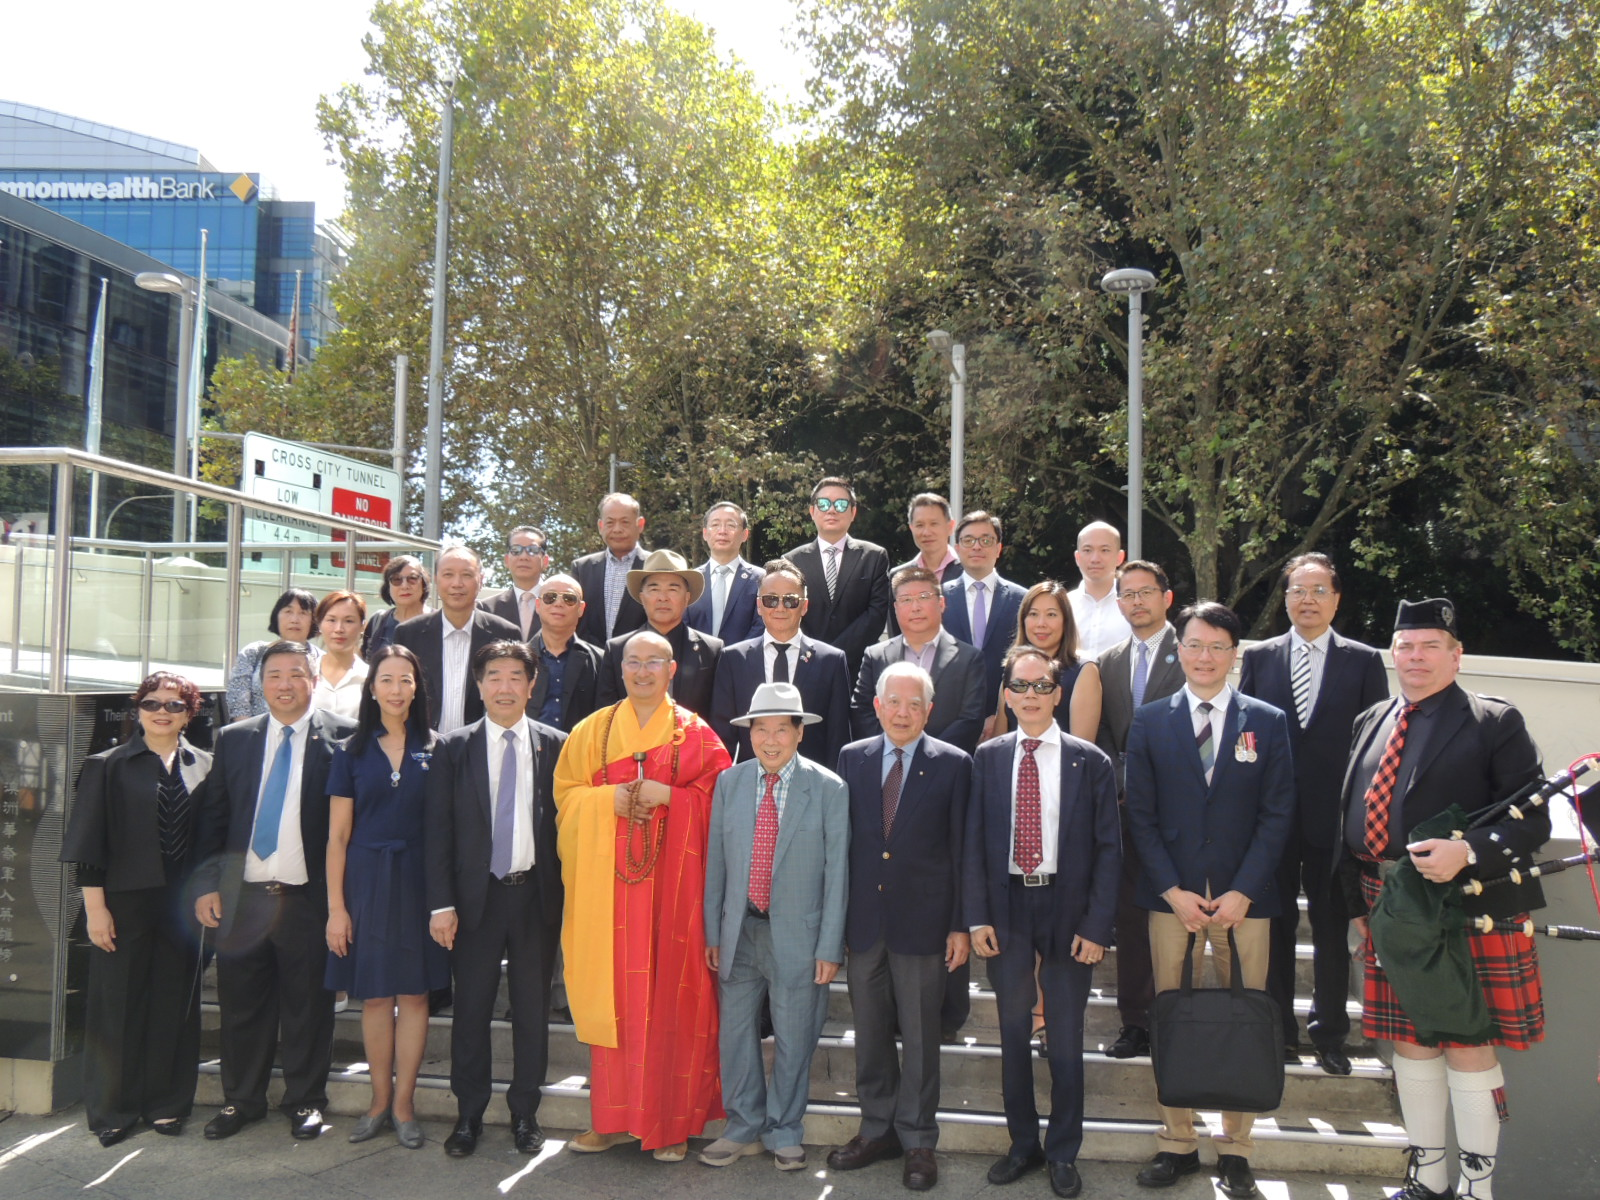 The China Trade Association held a commemorative ceremony on the day of Ching Ming Festival. More than 30 people attended the memorial to the Chinese soldiers who presented flowers | Australia Chinatown Community News